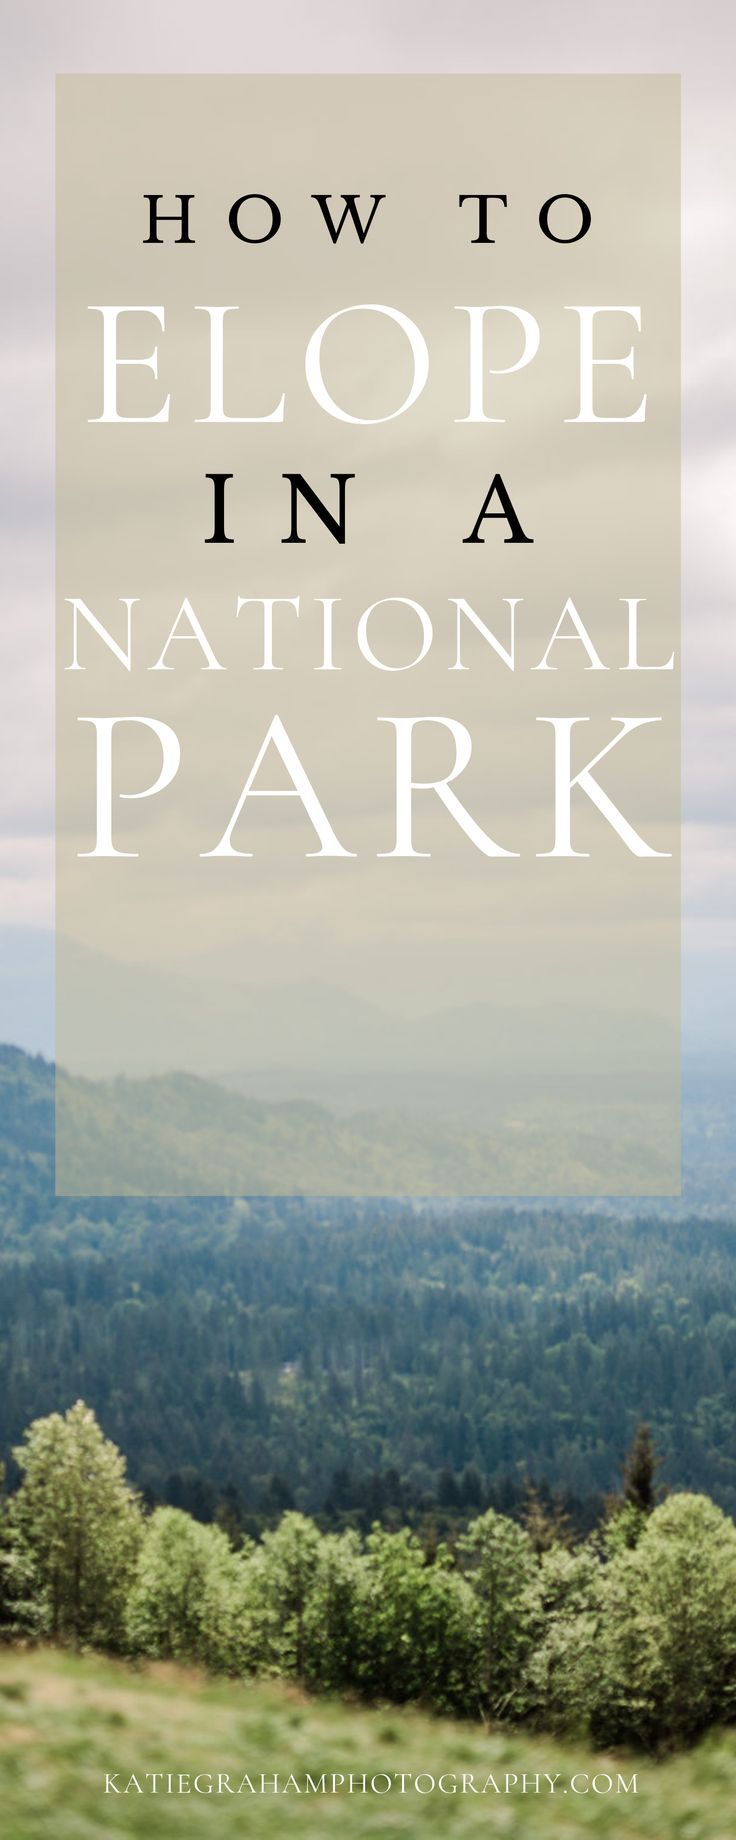 How to elope in a national park adventure wedding elope